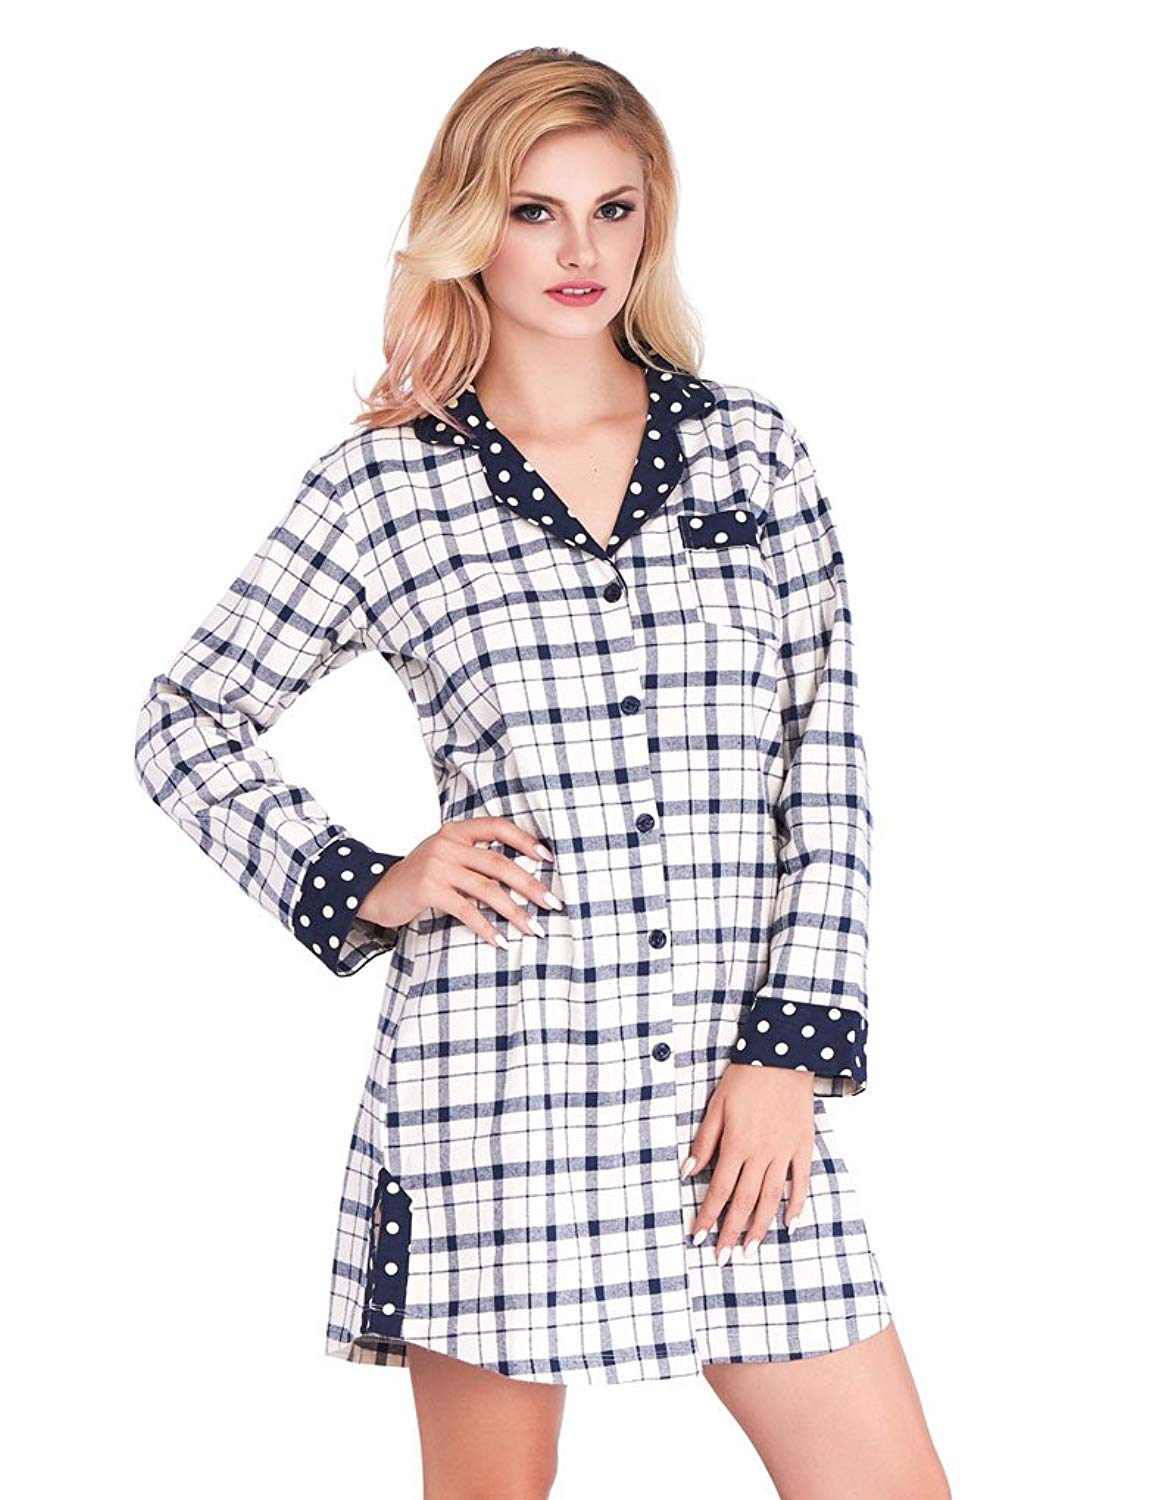 1cad0c0185 Get Quotations · Mio Lounge Joni Cream and Blue Check Polka Dot Soft Brushed  Cotton Nightshirt ML16C4NS